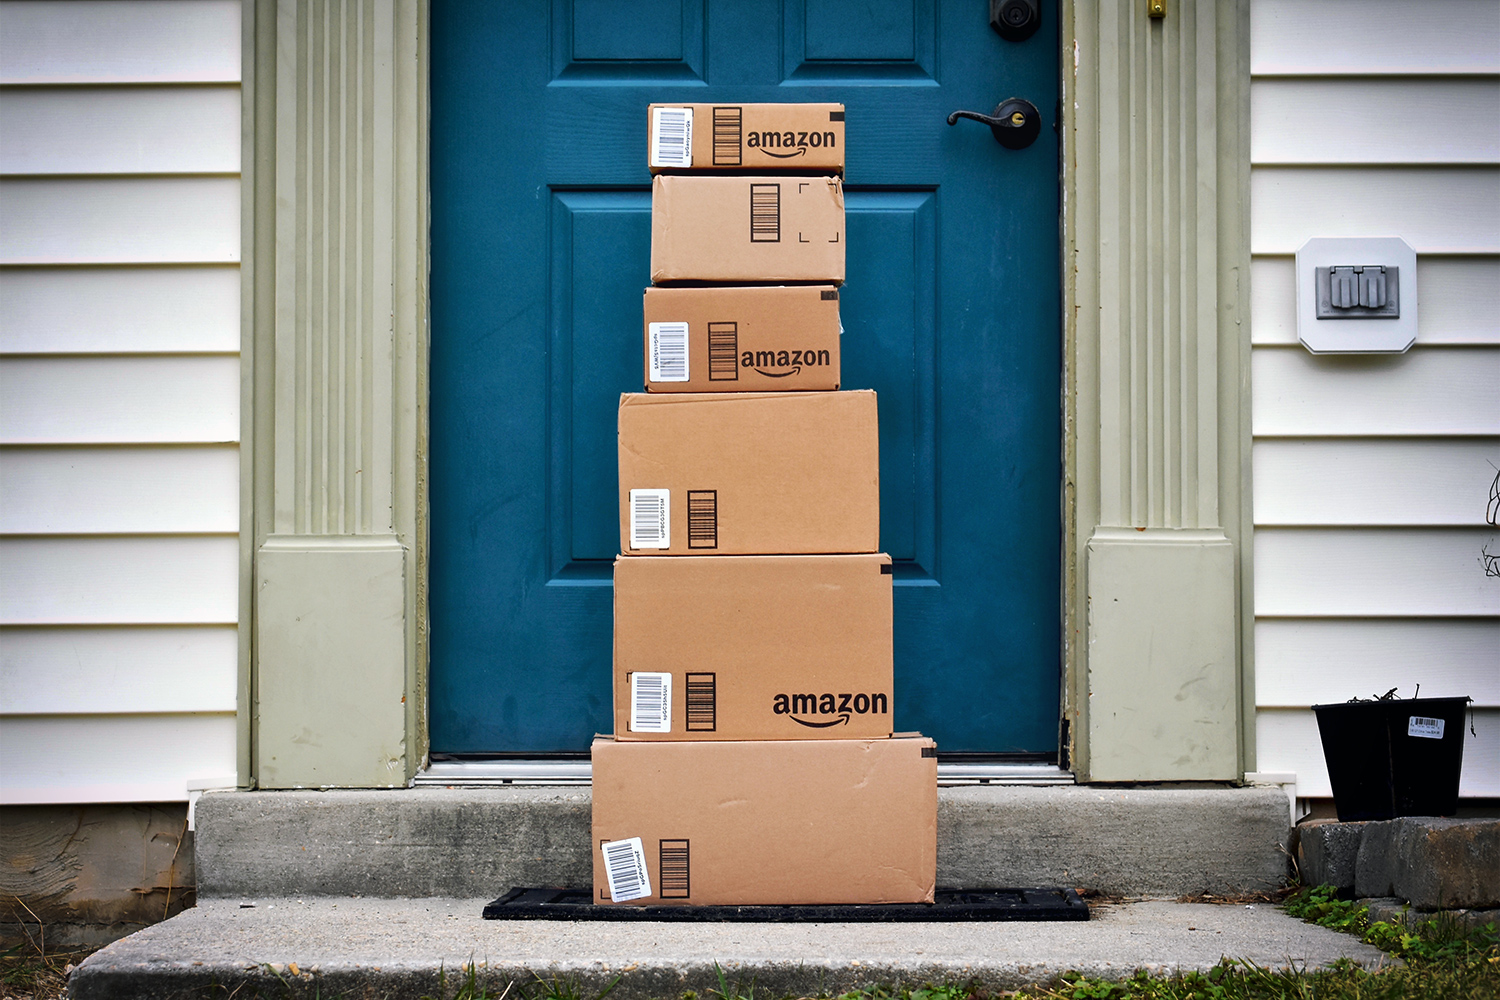 Amazon wants to deliver items to your car trunk and inside your house